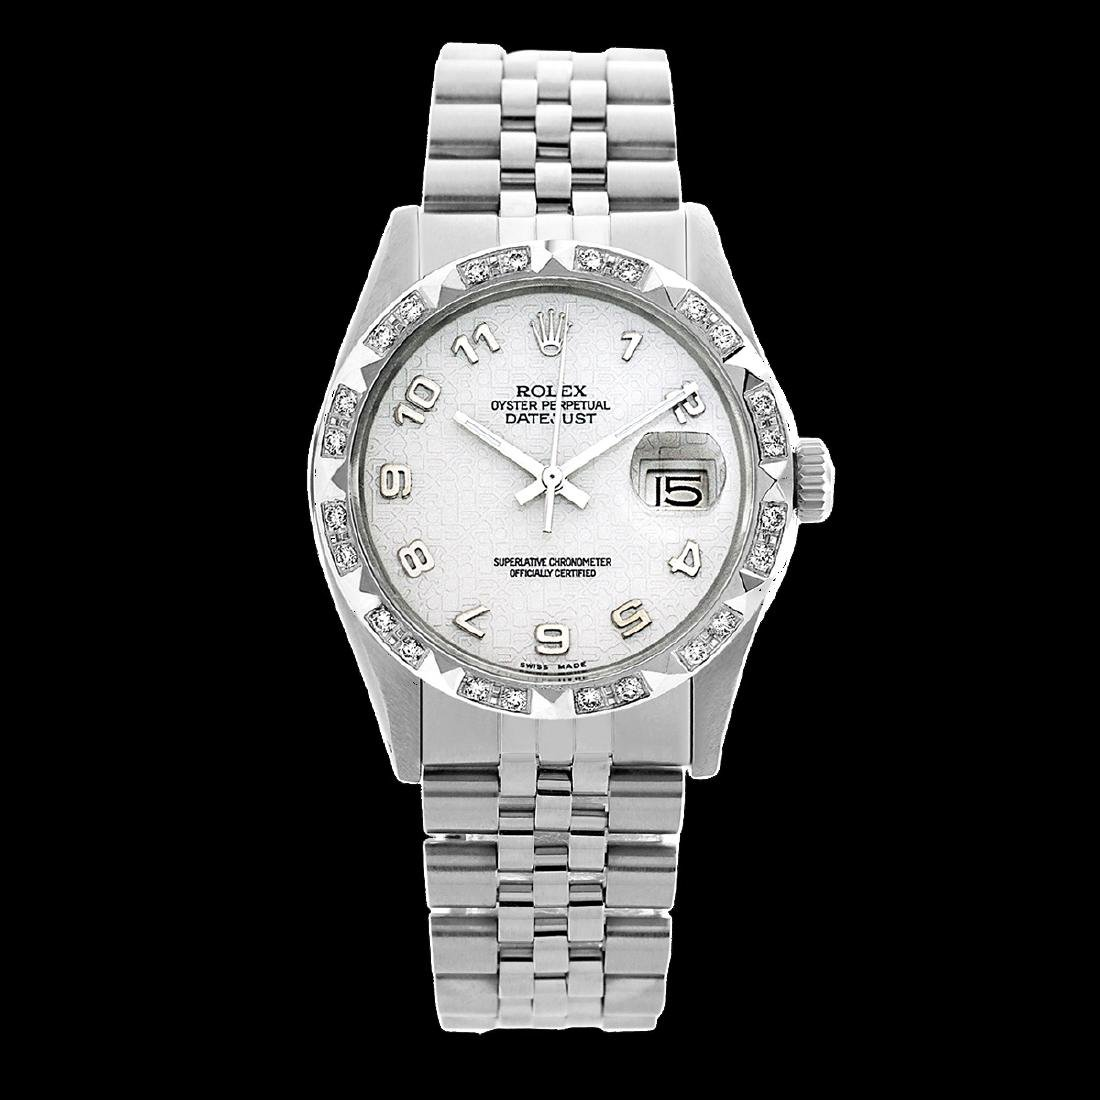 Rolex Men's Stainless Steel, QuickSet, Arabic Dial with - 2